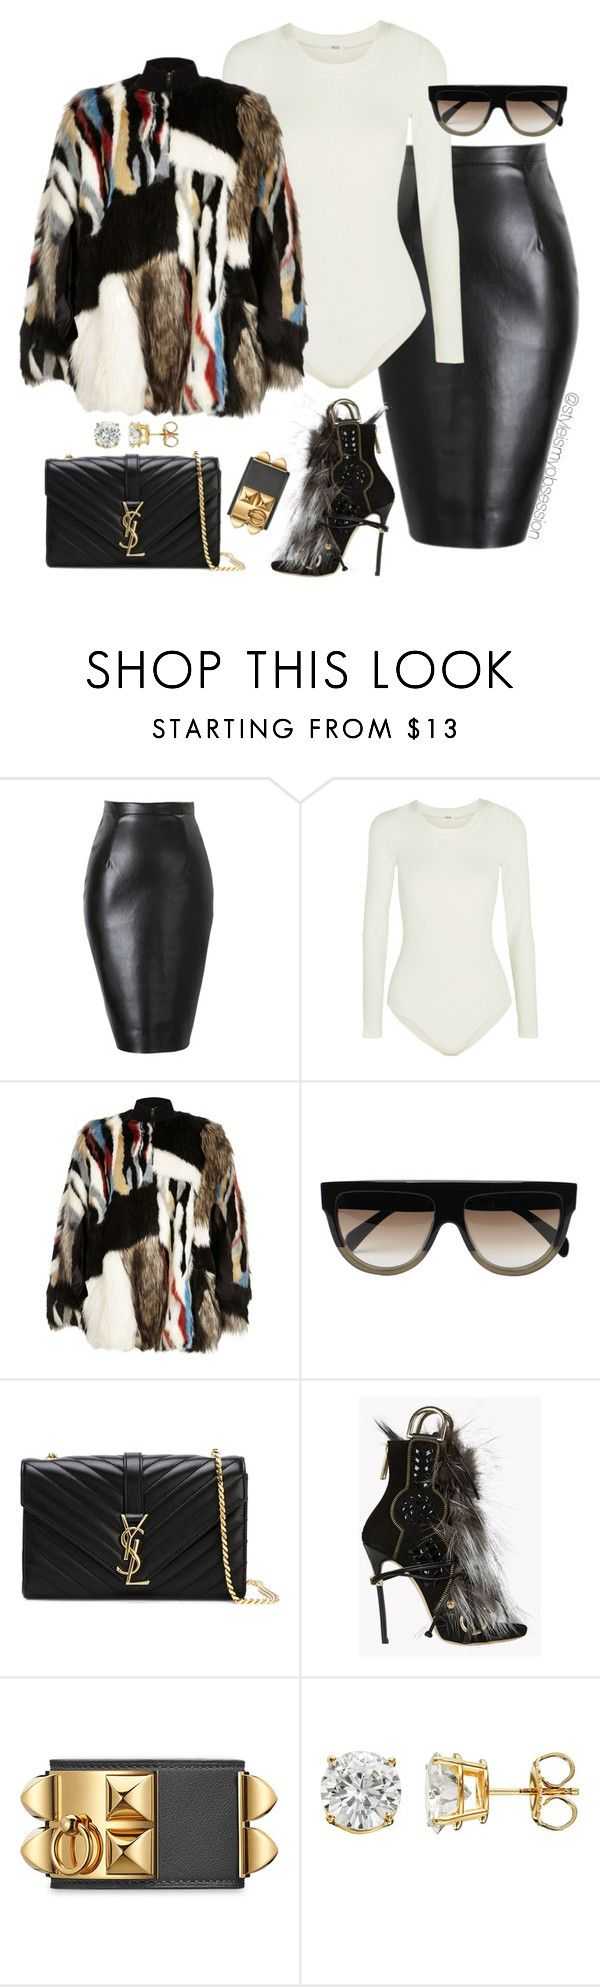 """""""Untitled #1655"""" by dnicoleg ❤ liked on Polyvore featuring Wolford, River Island, CÉLINE, Yves Saint Laurent and Dsquared2"""